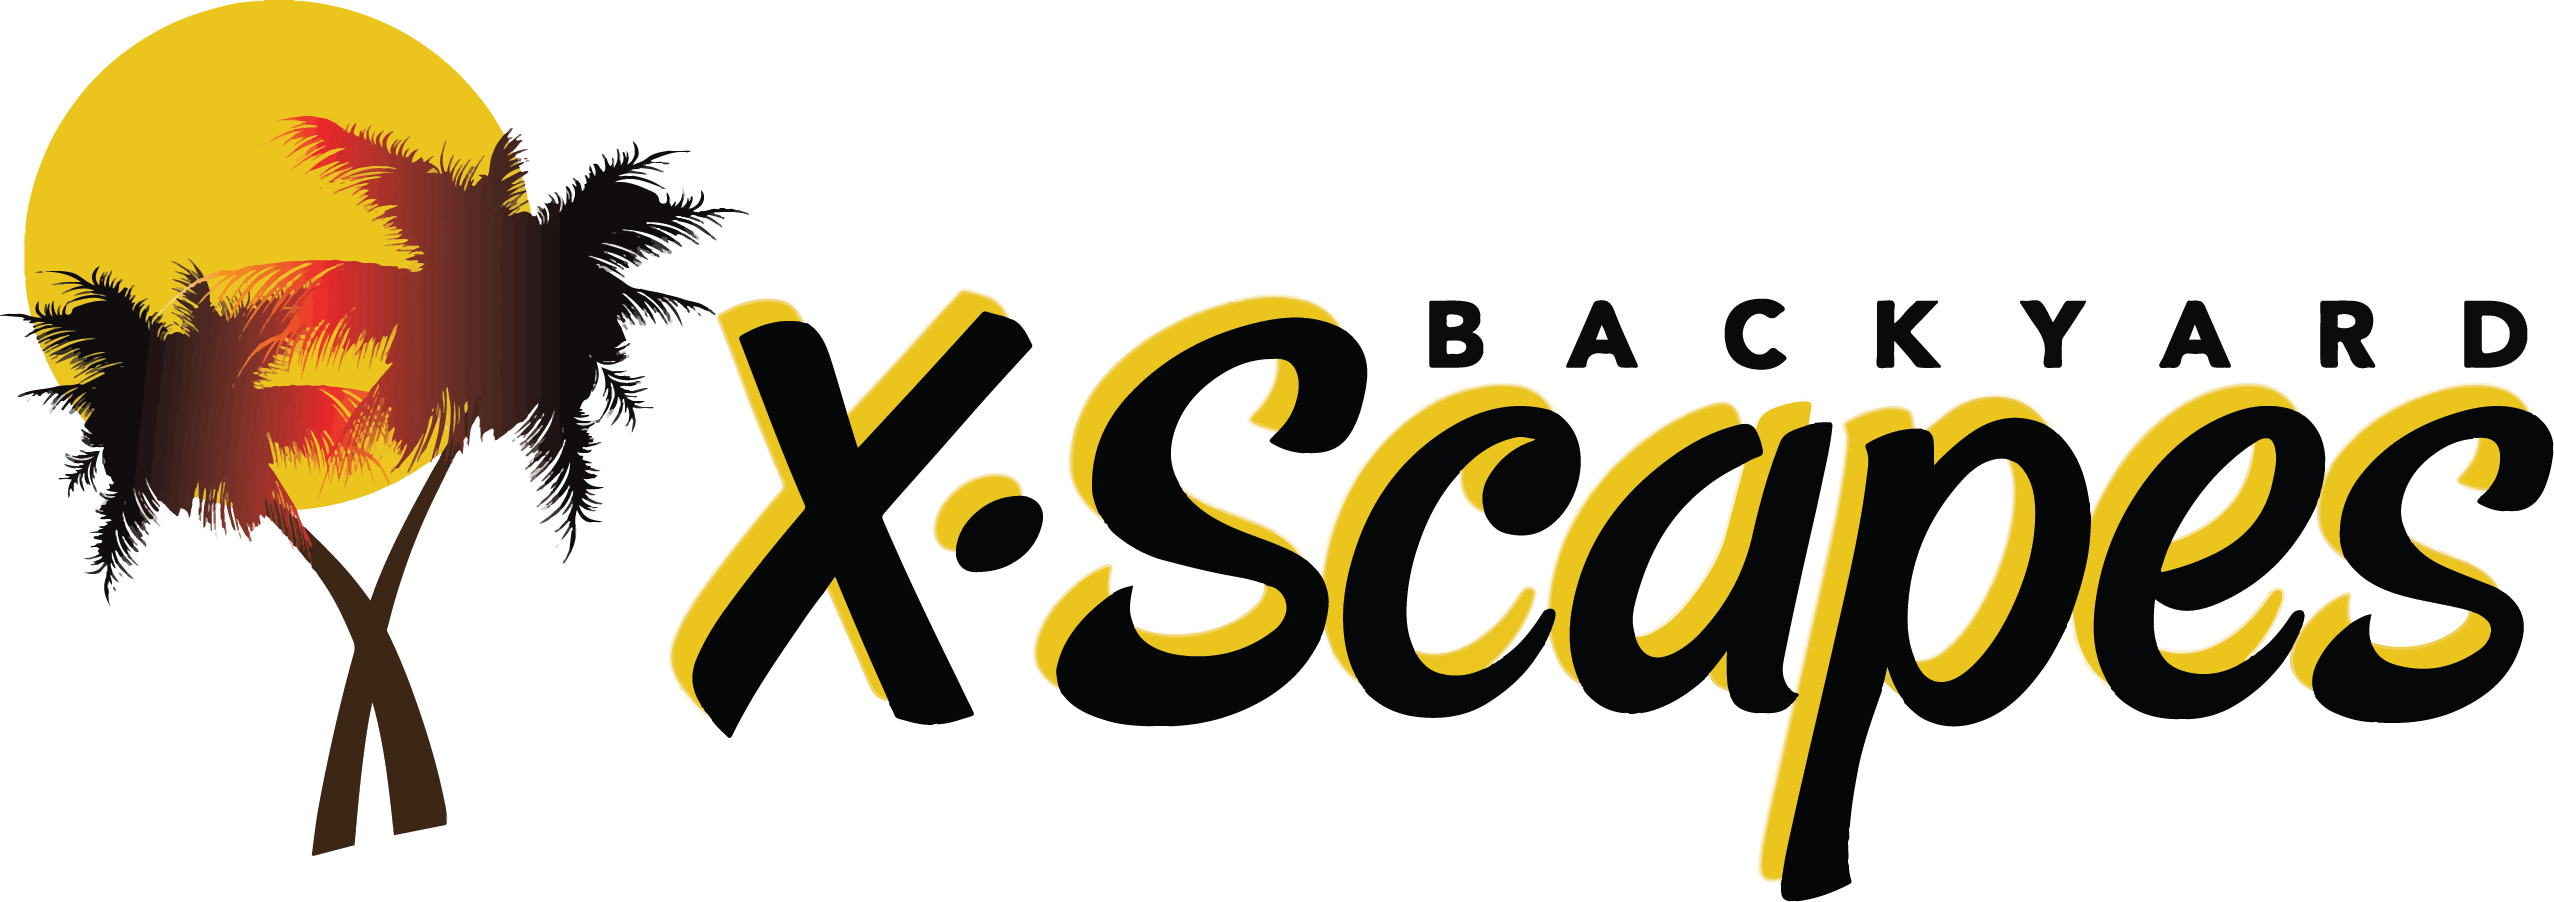 Backyard X-Scapes Coupon Codes October 2021